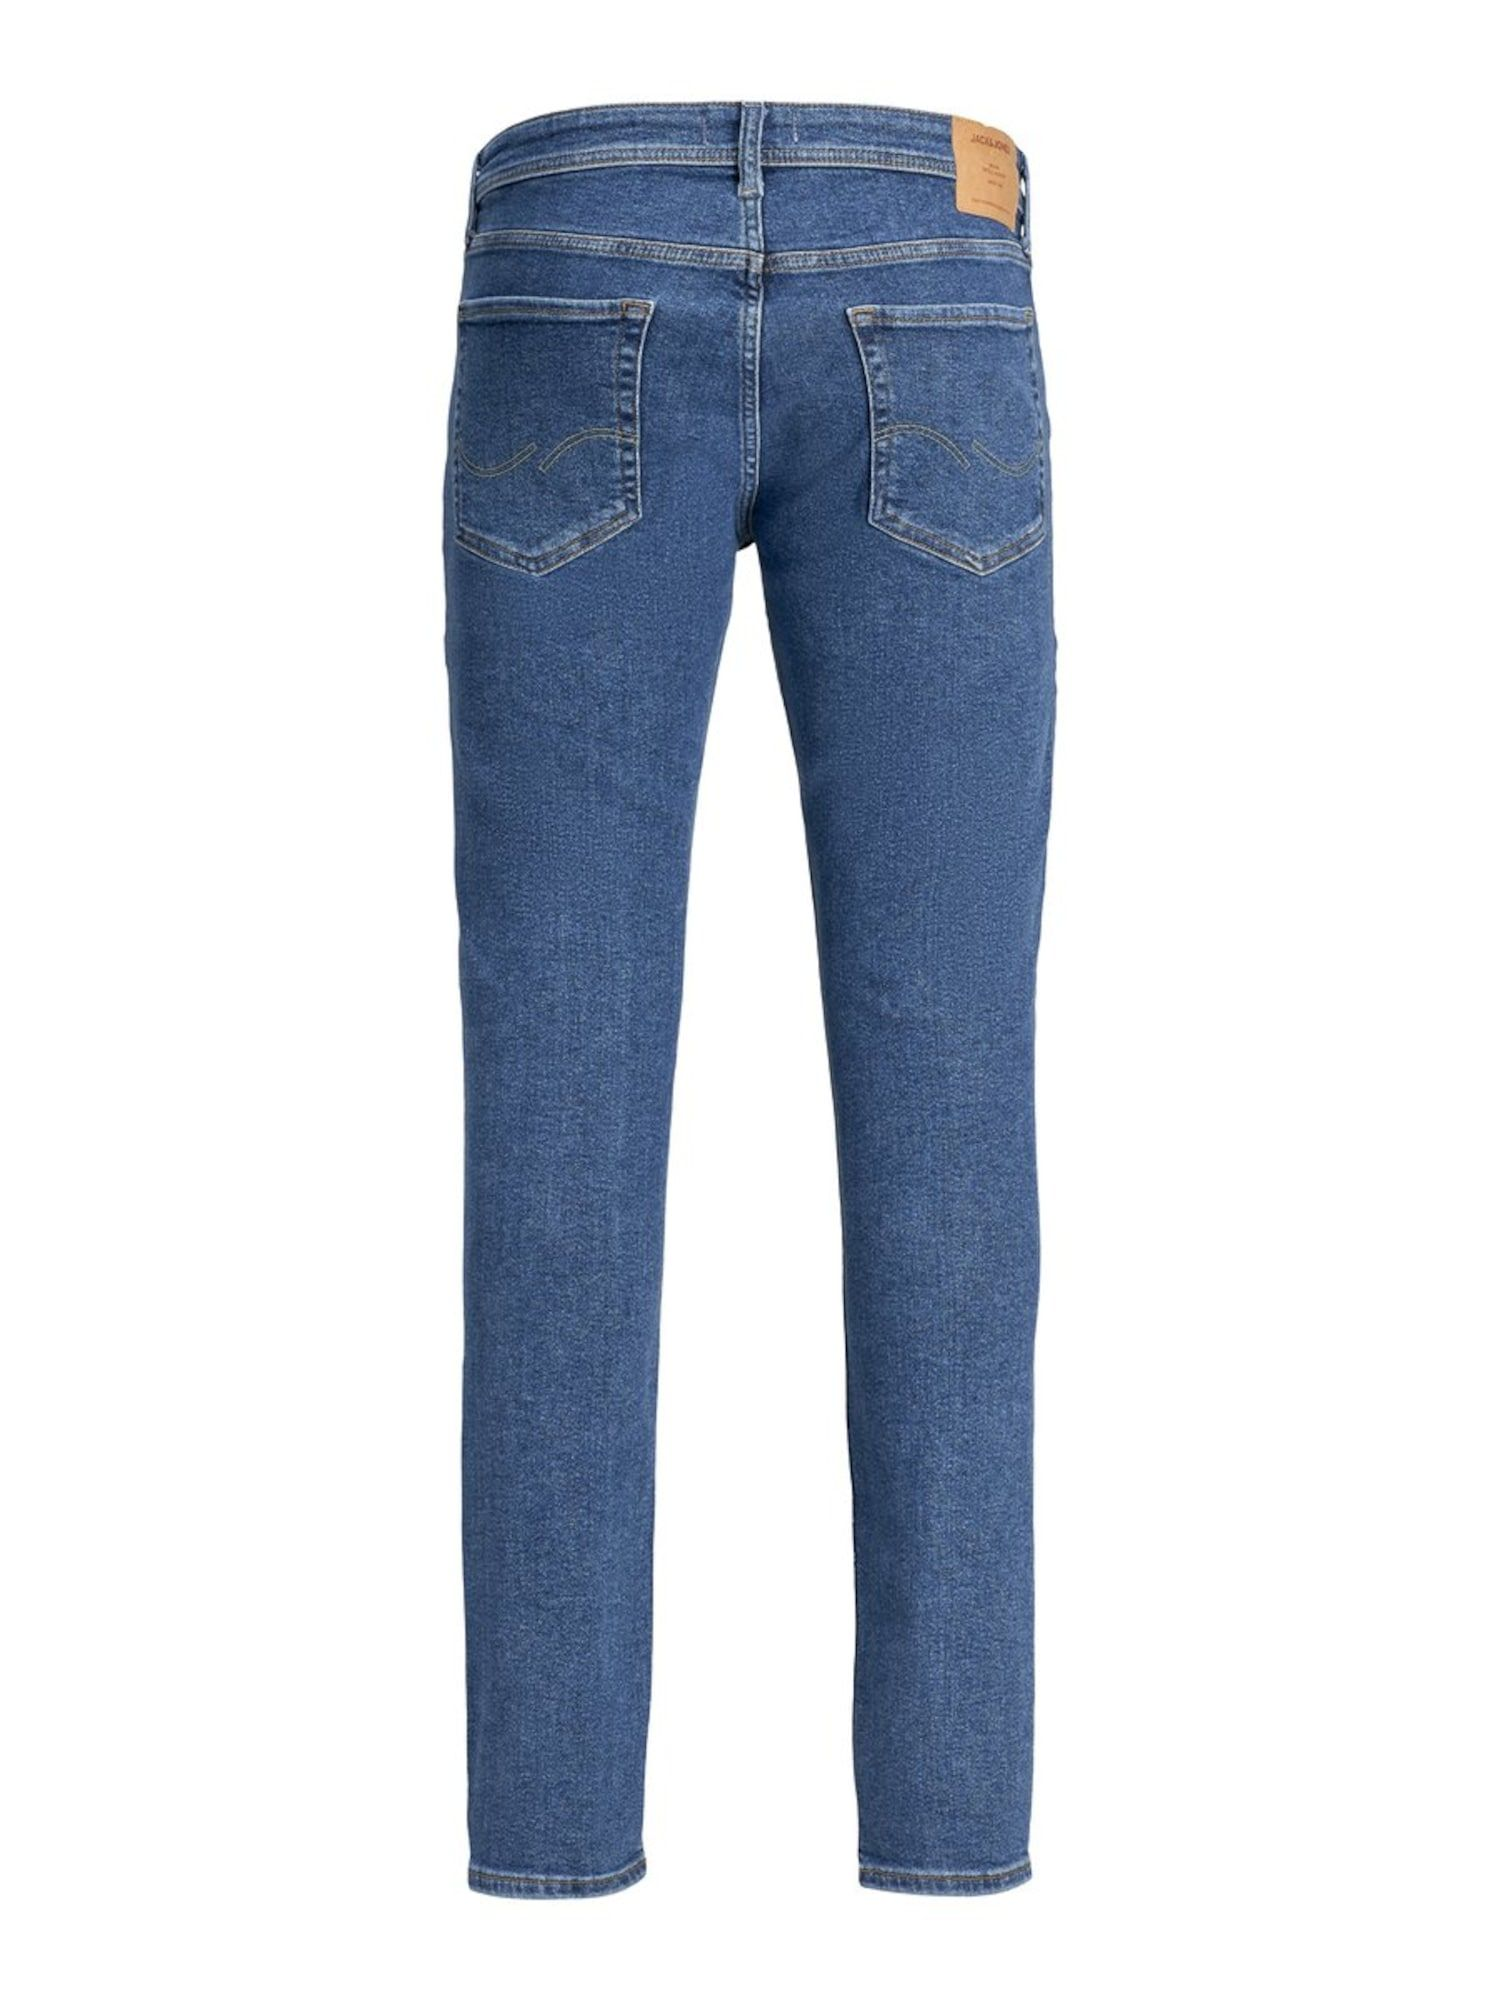 JACK & JONES Jeans 'Glenn Original CJ 172 50SPS' in blue denim #oldtshirtsandsuch